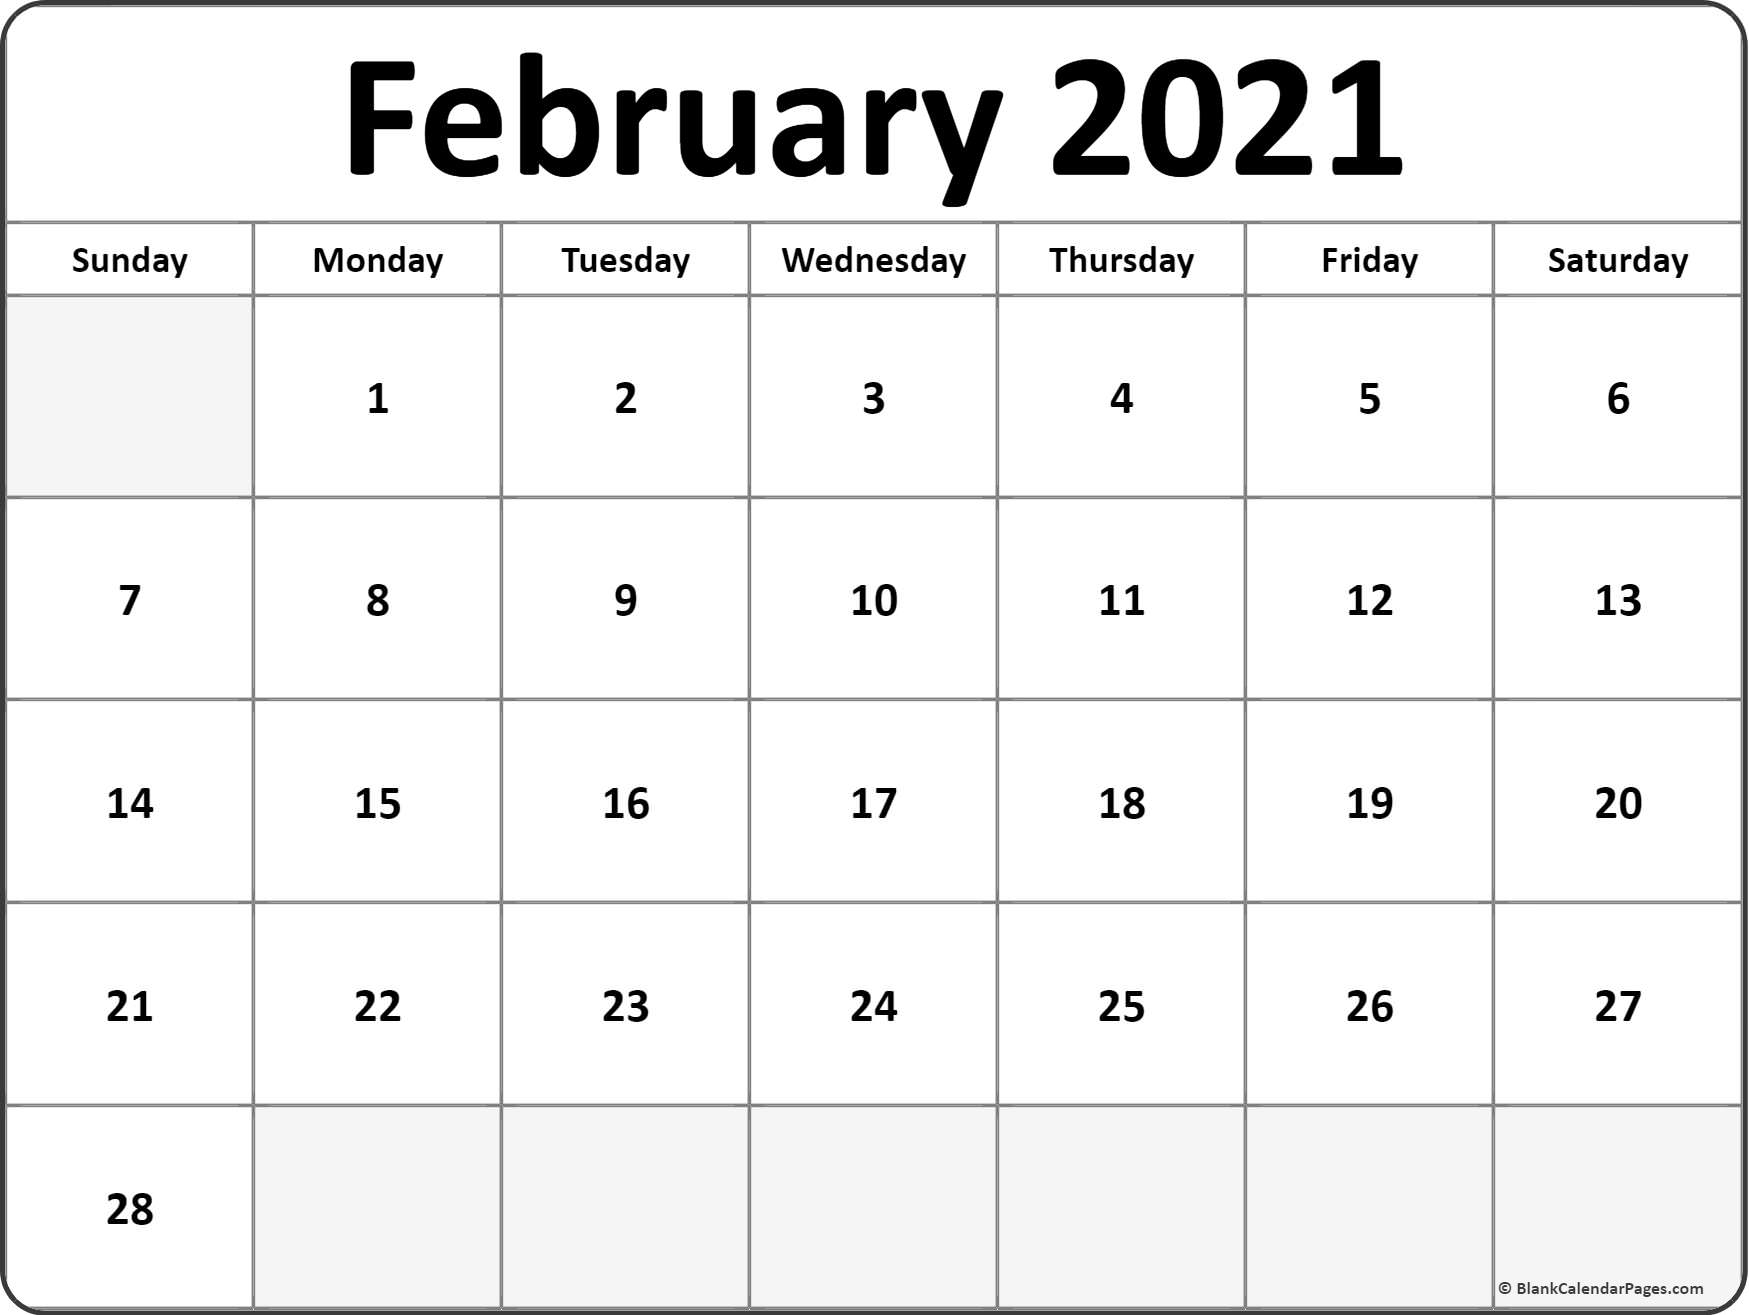 February 2021 Calendar | Free Printable Monthly Calendars